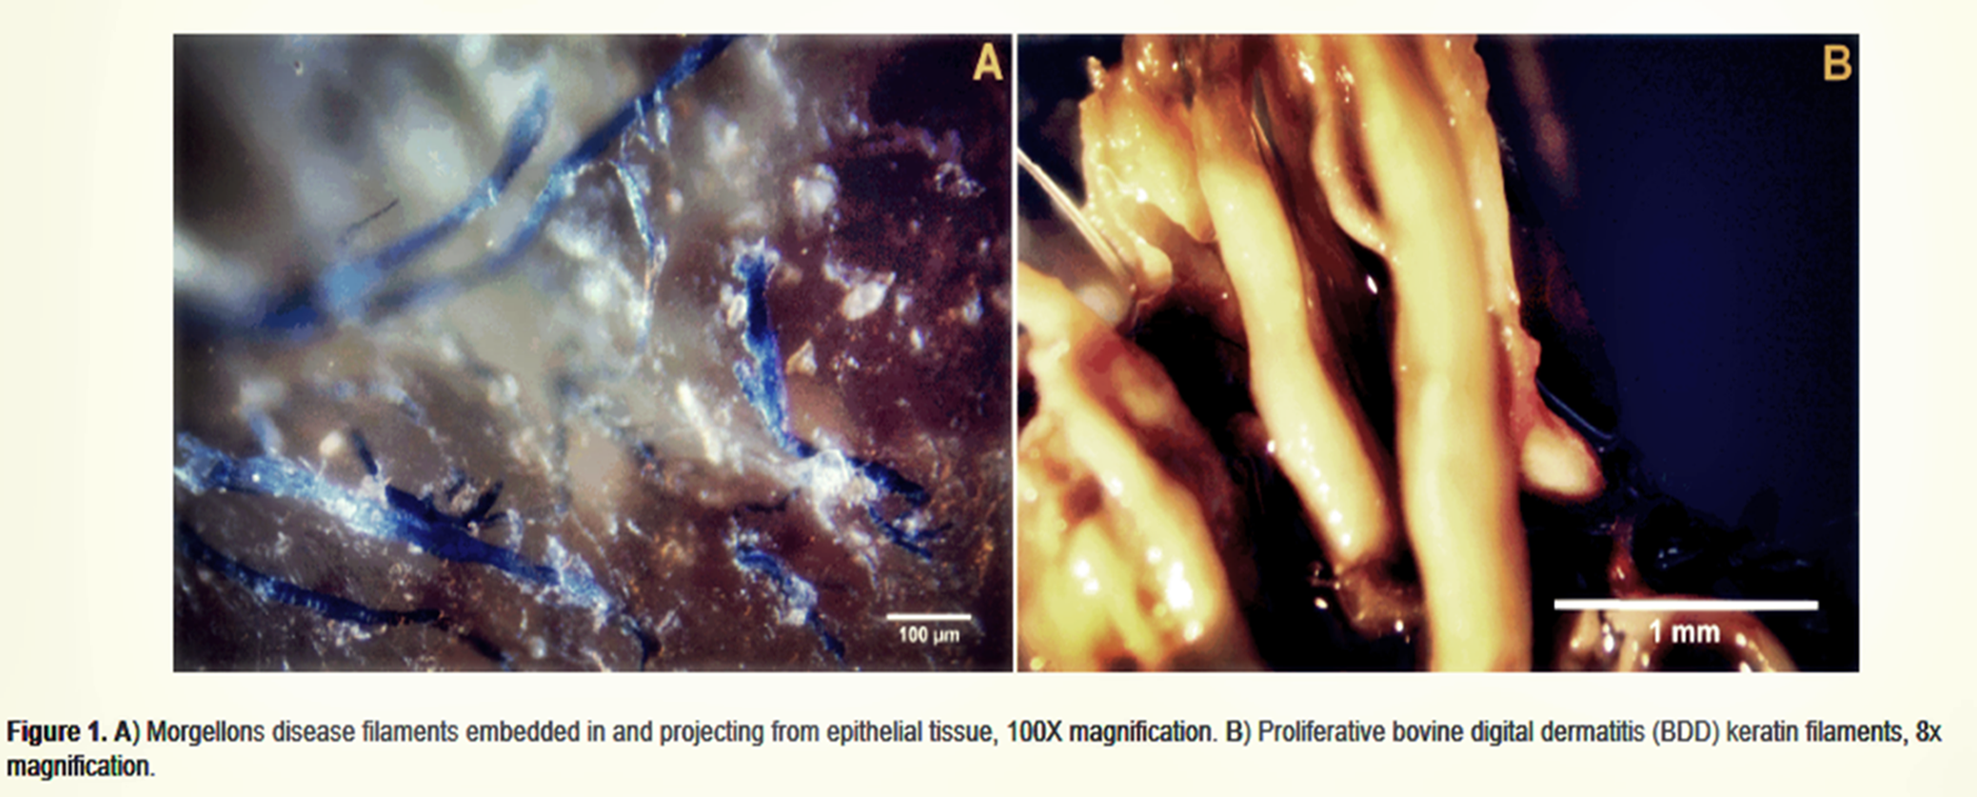 Evidence Mounting that Morgellons Disease is an Emerging Infectious